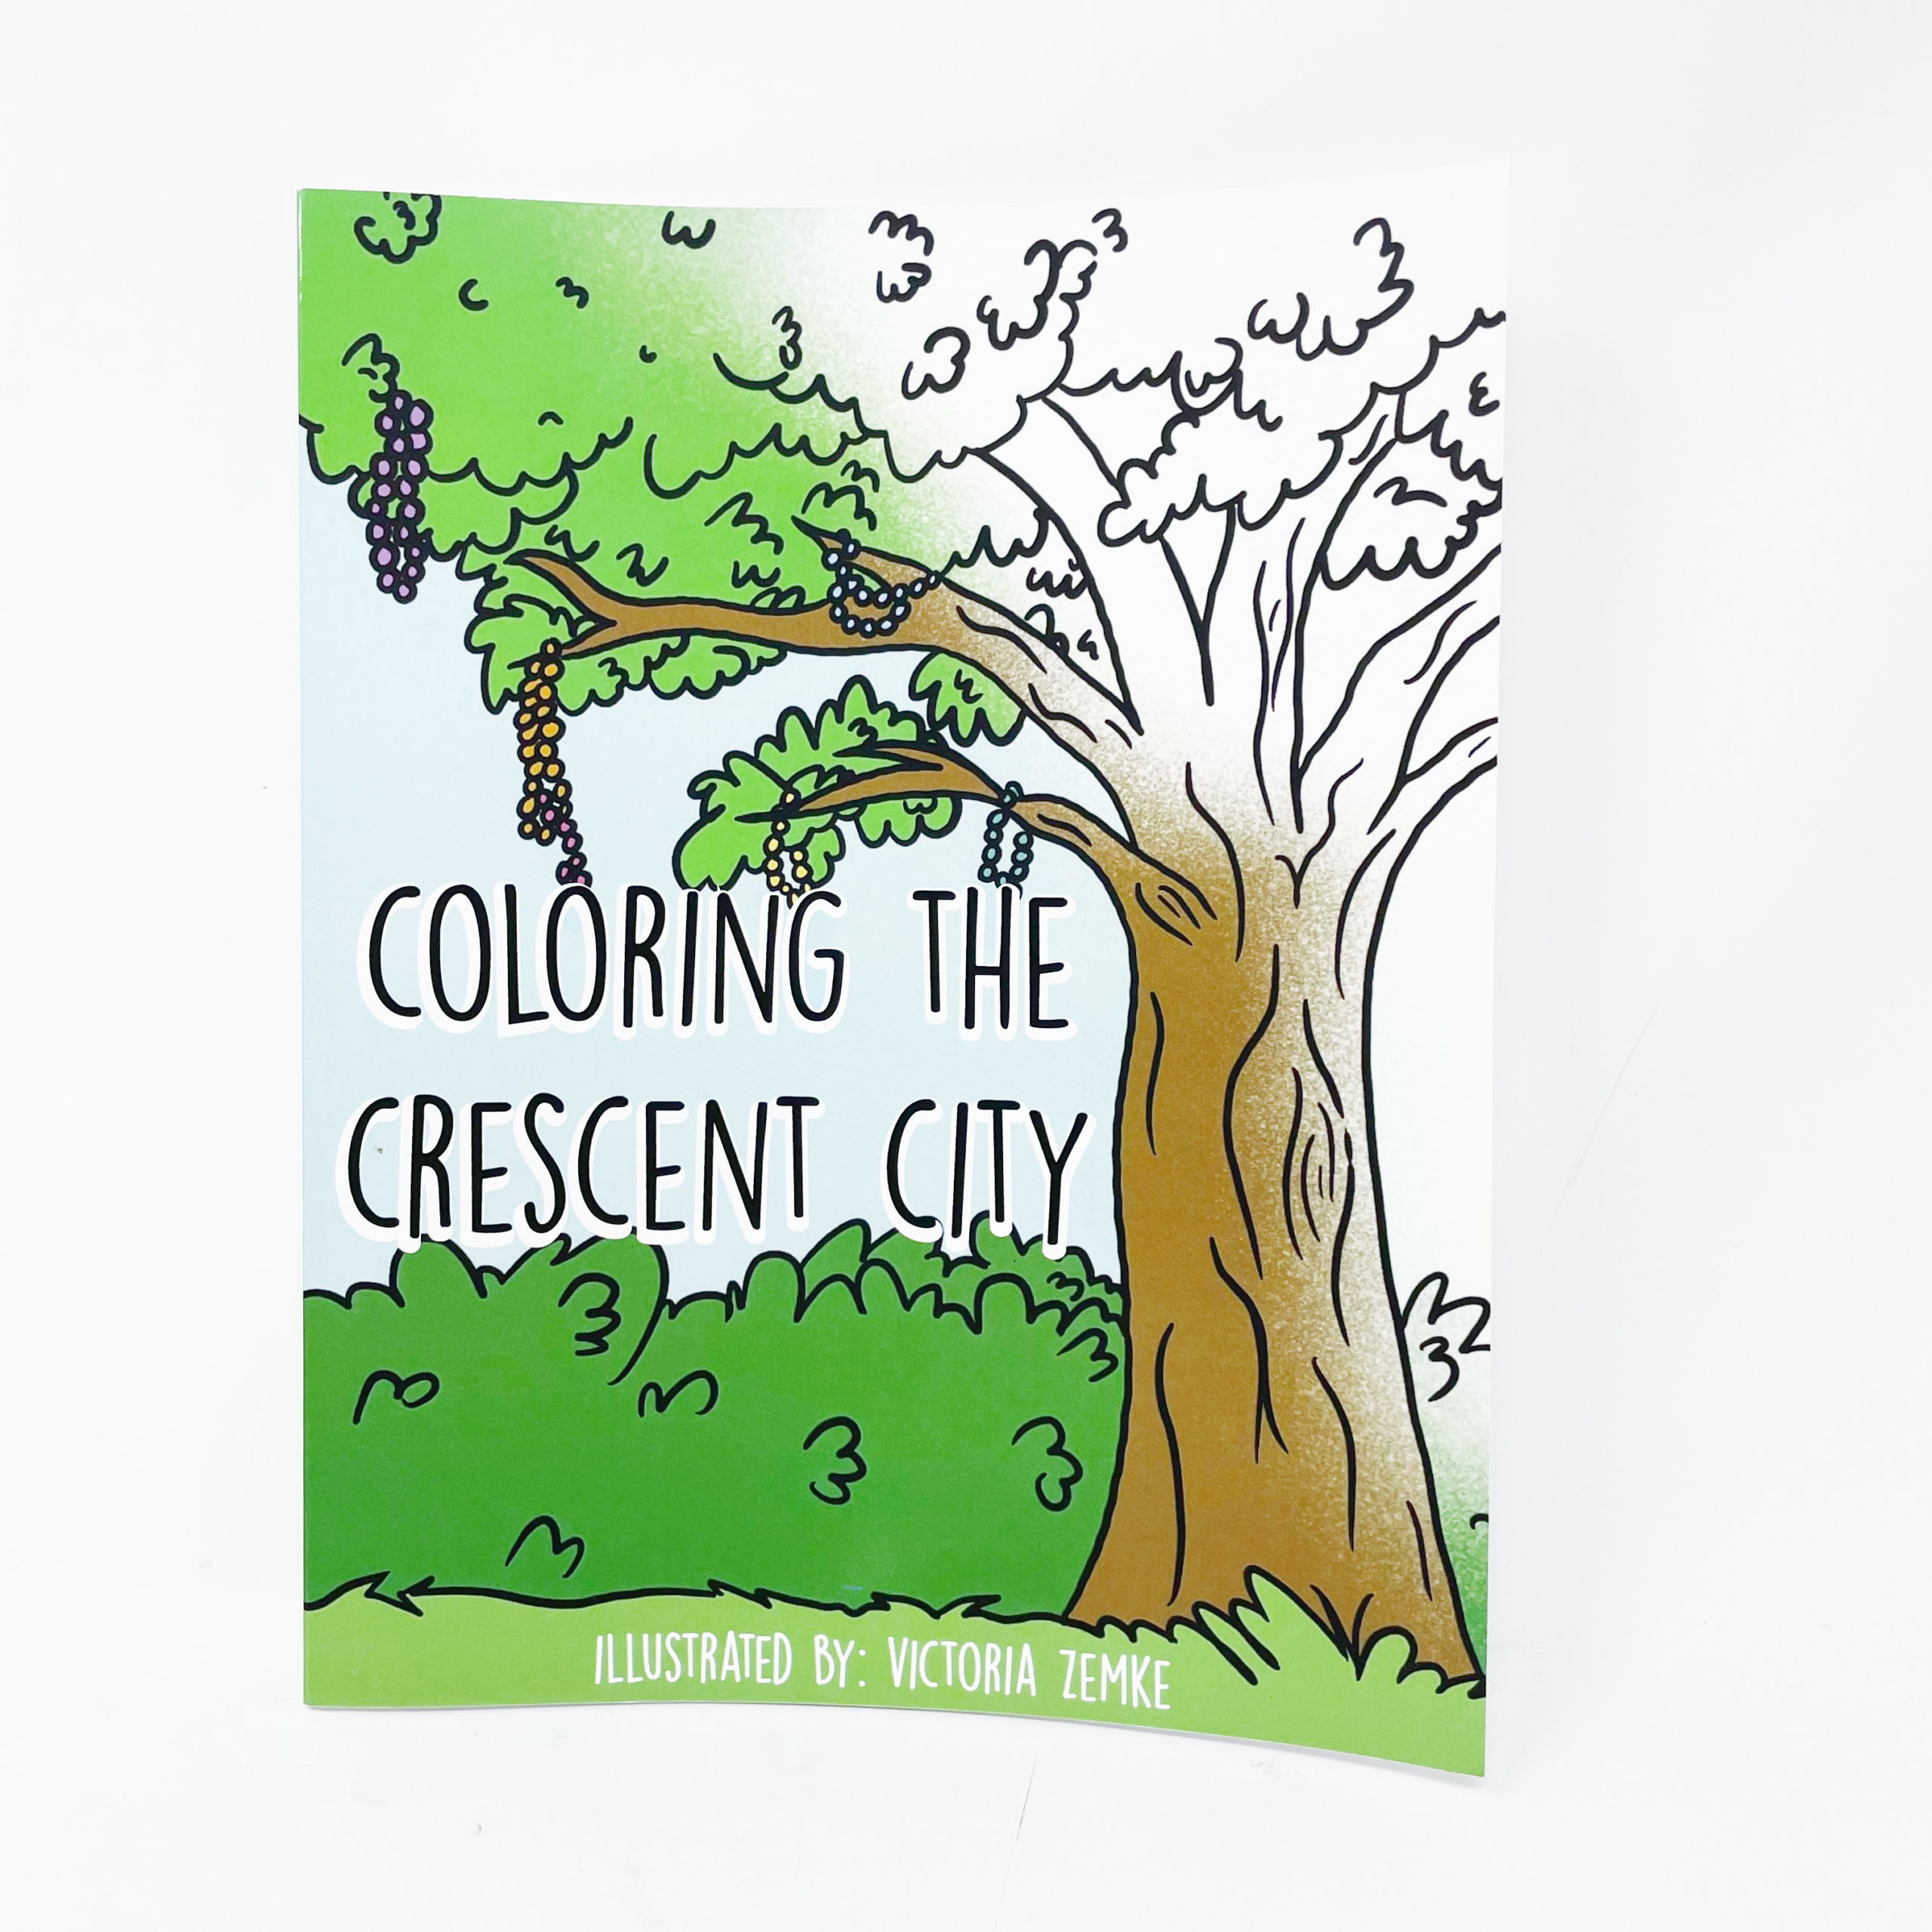 Coloring the Crescent City